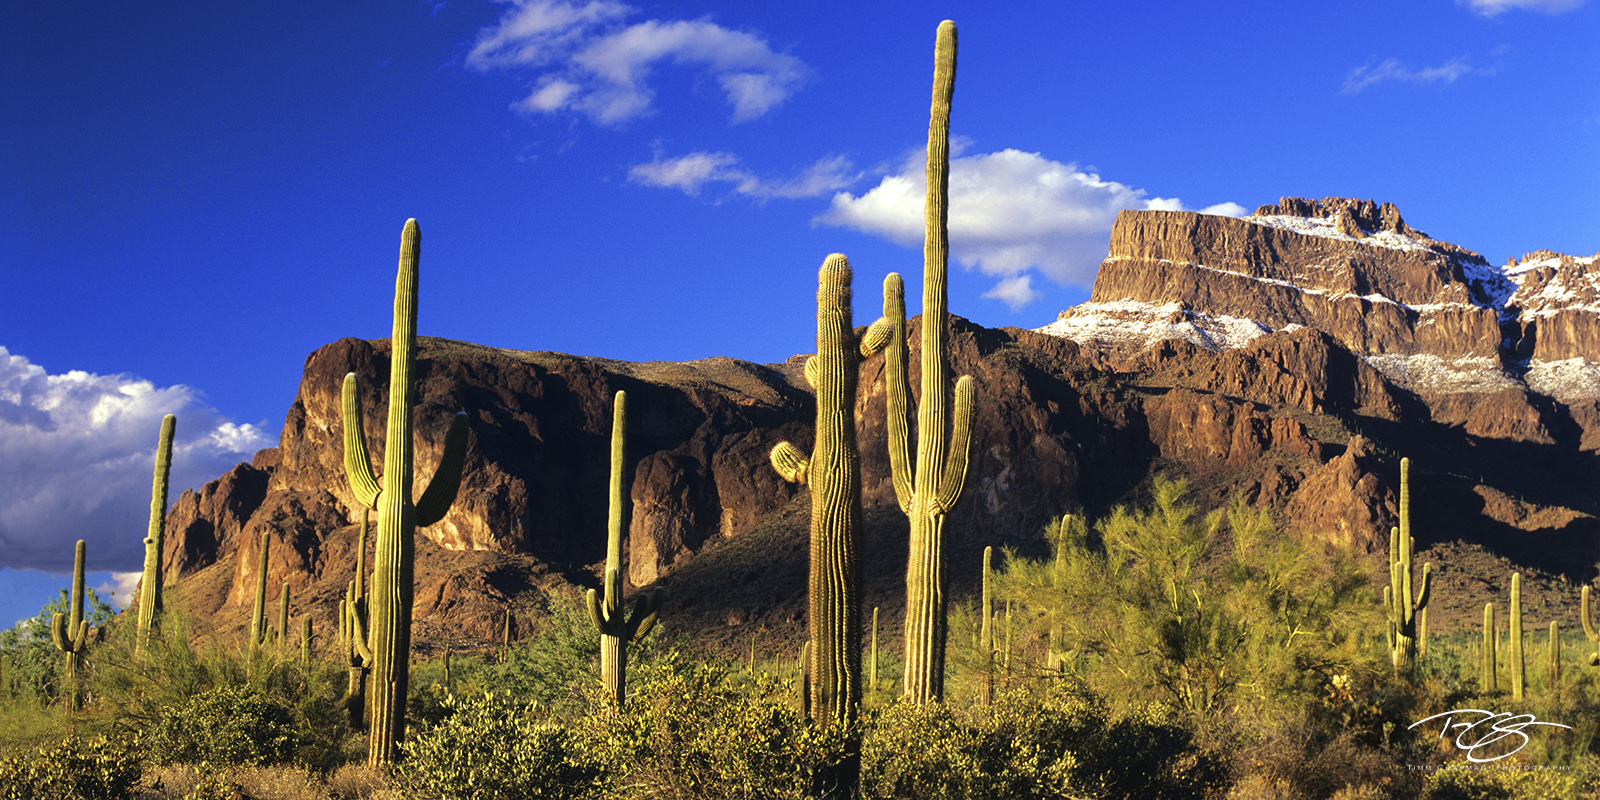 A rare snowfall crowns the Flatiron on the Superstition Mountains